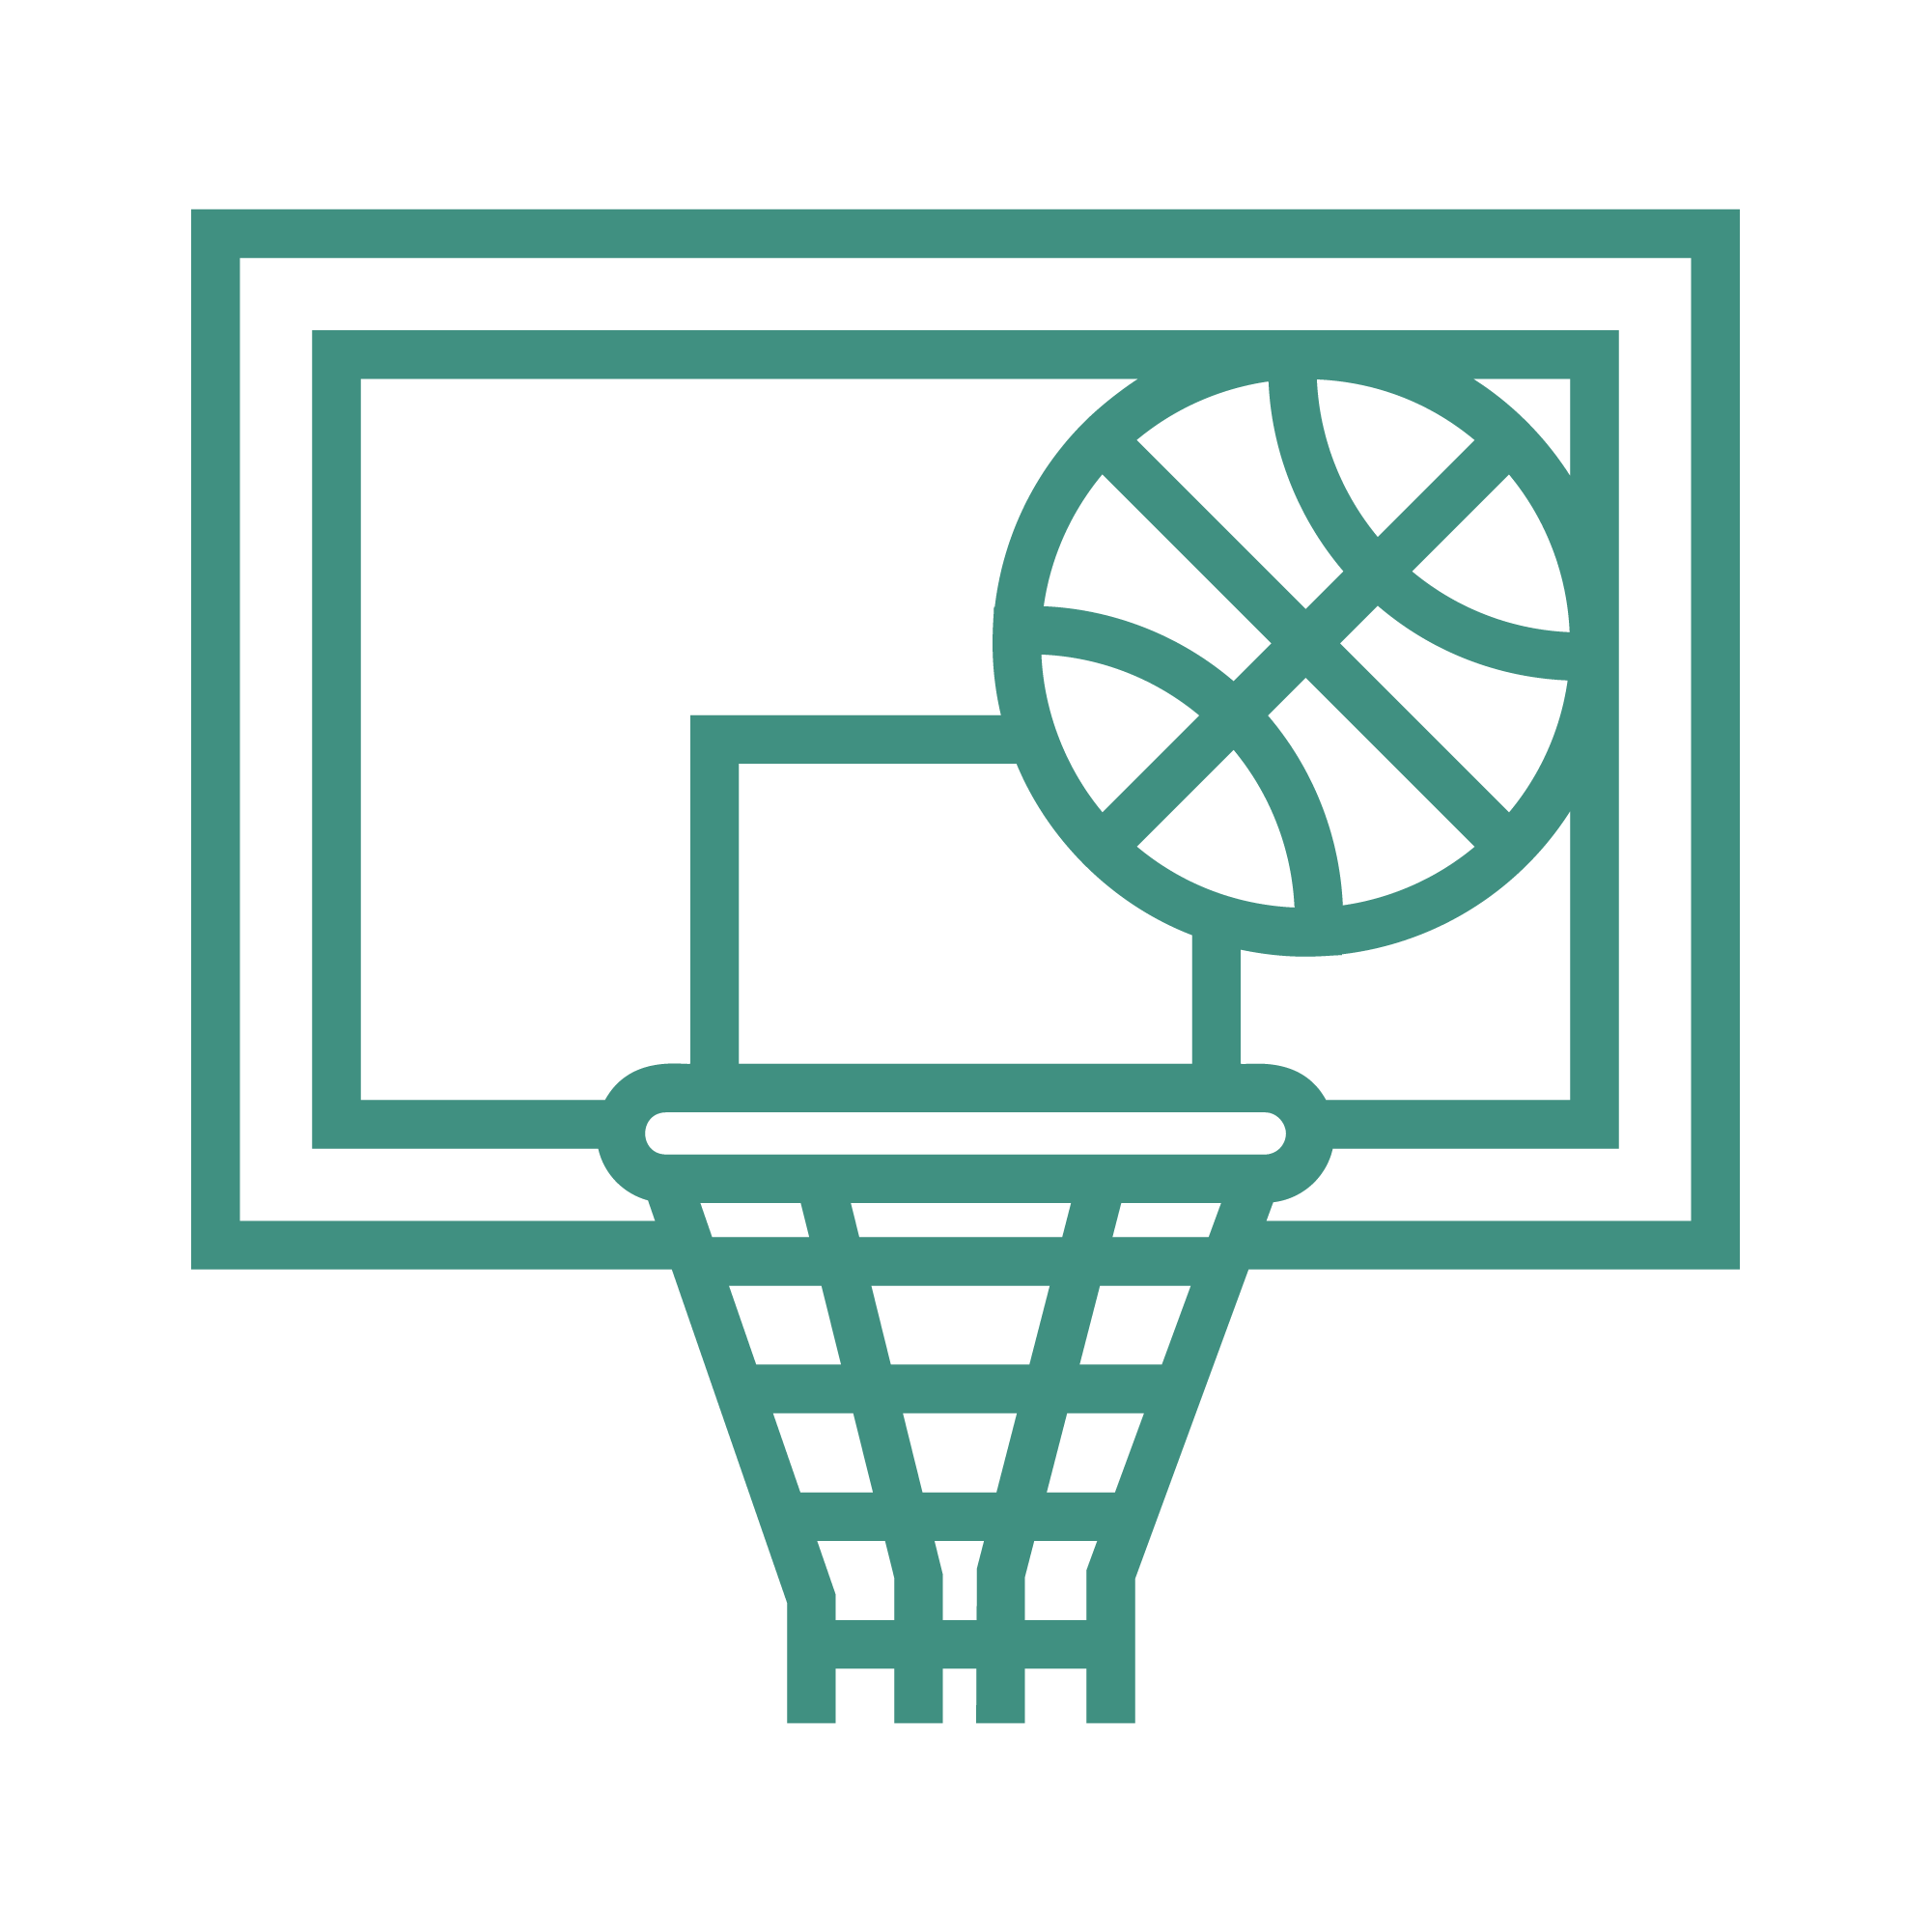 An icon depicting youth and teen basketball